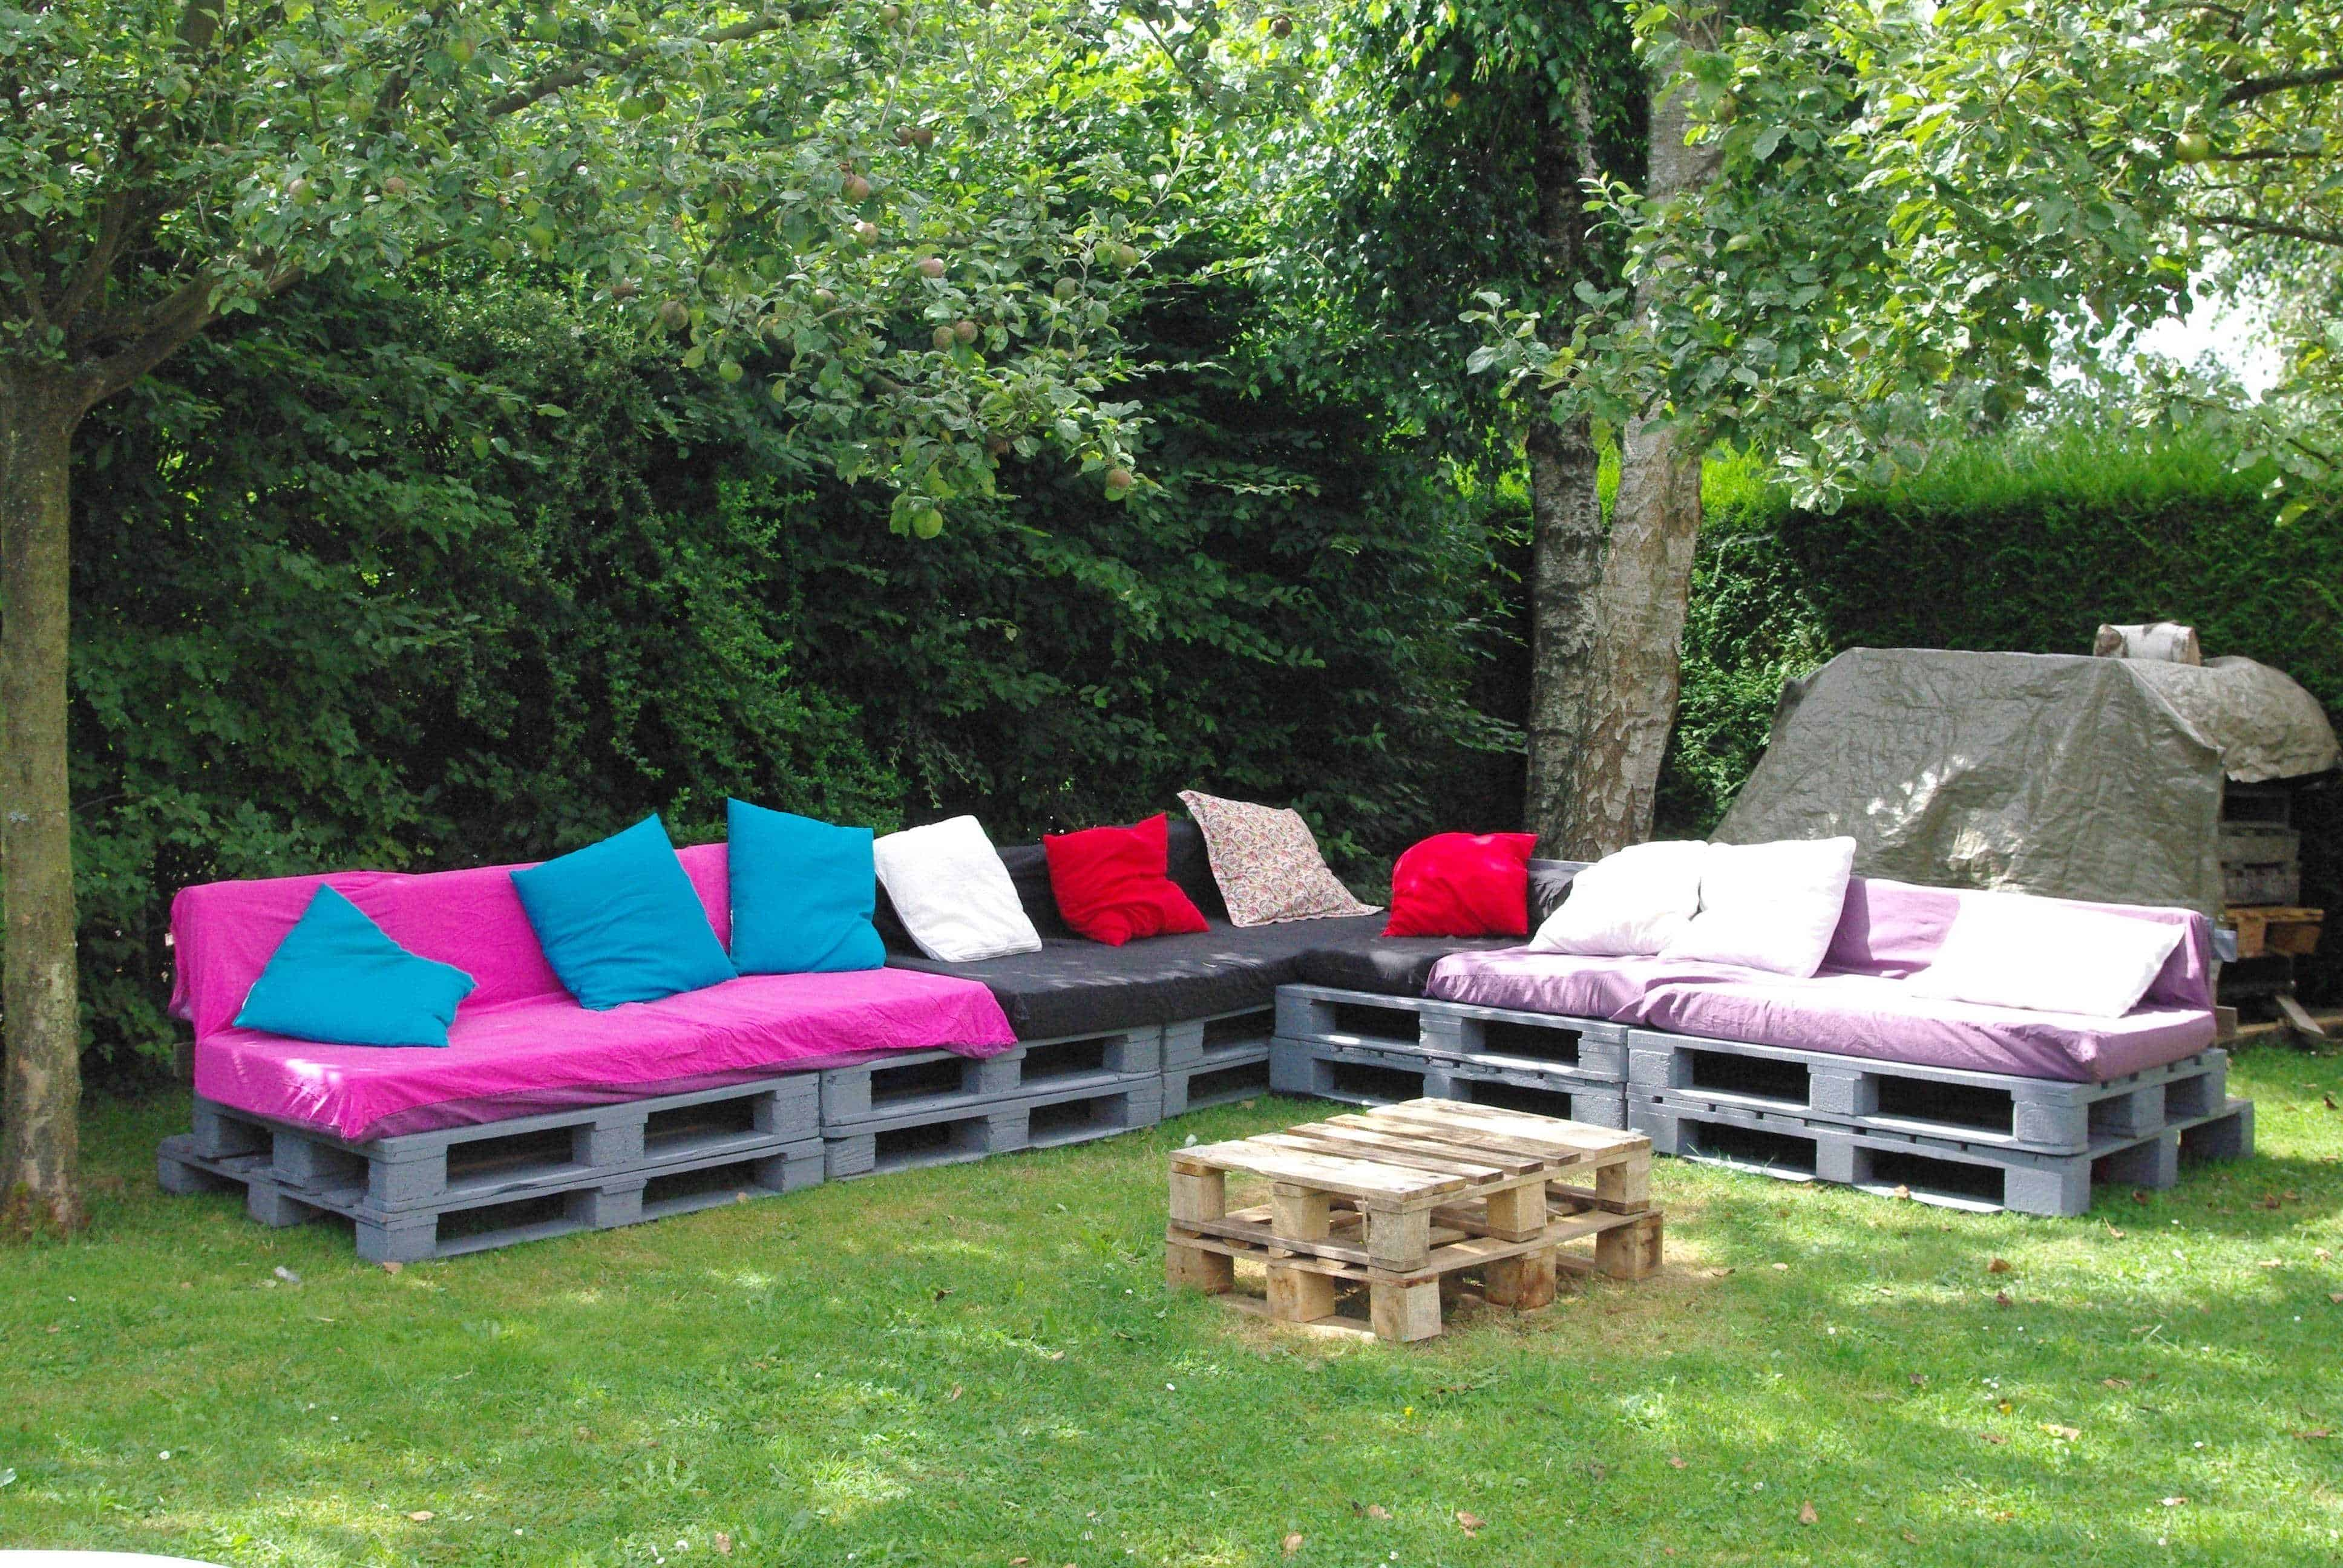 Salon de jardin une invitation la paresse pallet garden set 1001 pallets for Jardin 1001 saveurs